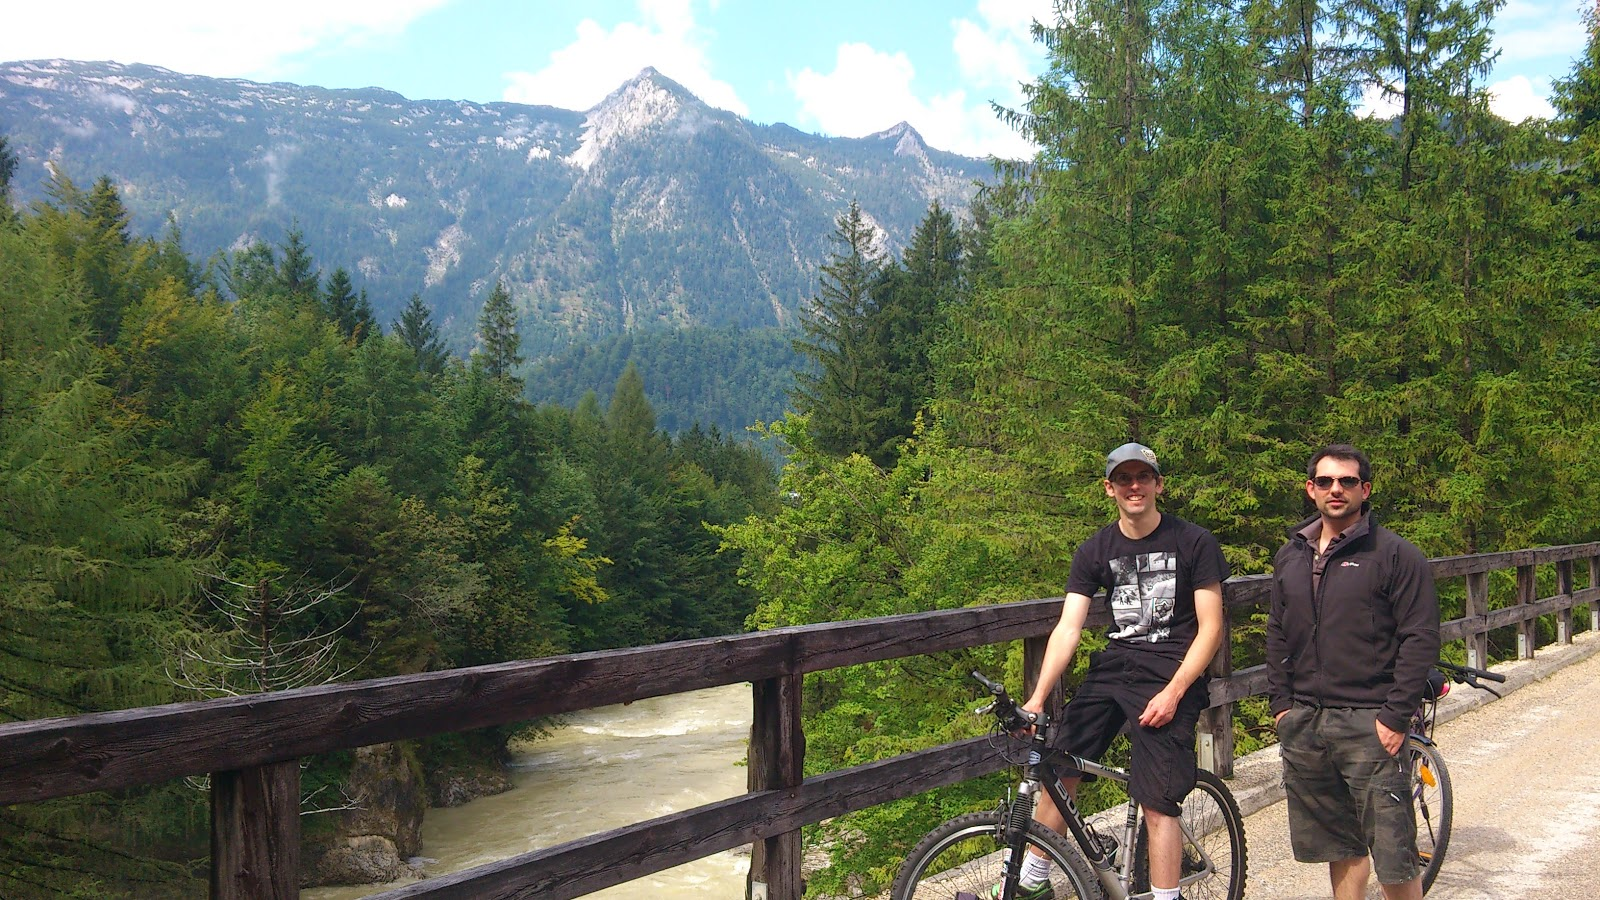 Crossing over the river Traun on our bikes above a dramatic waterfall.